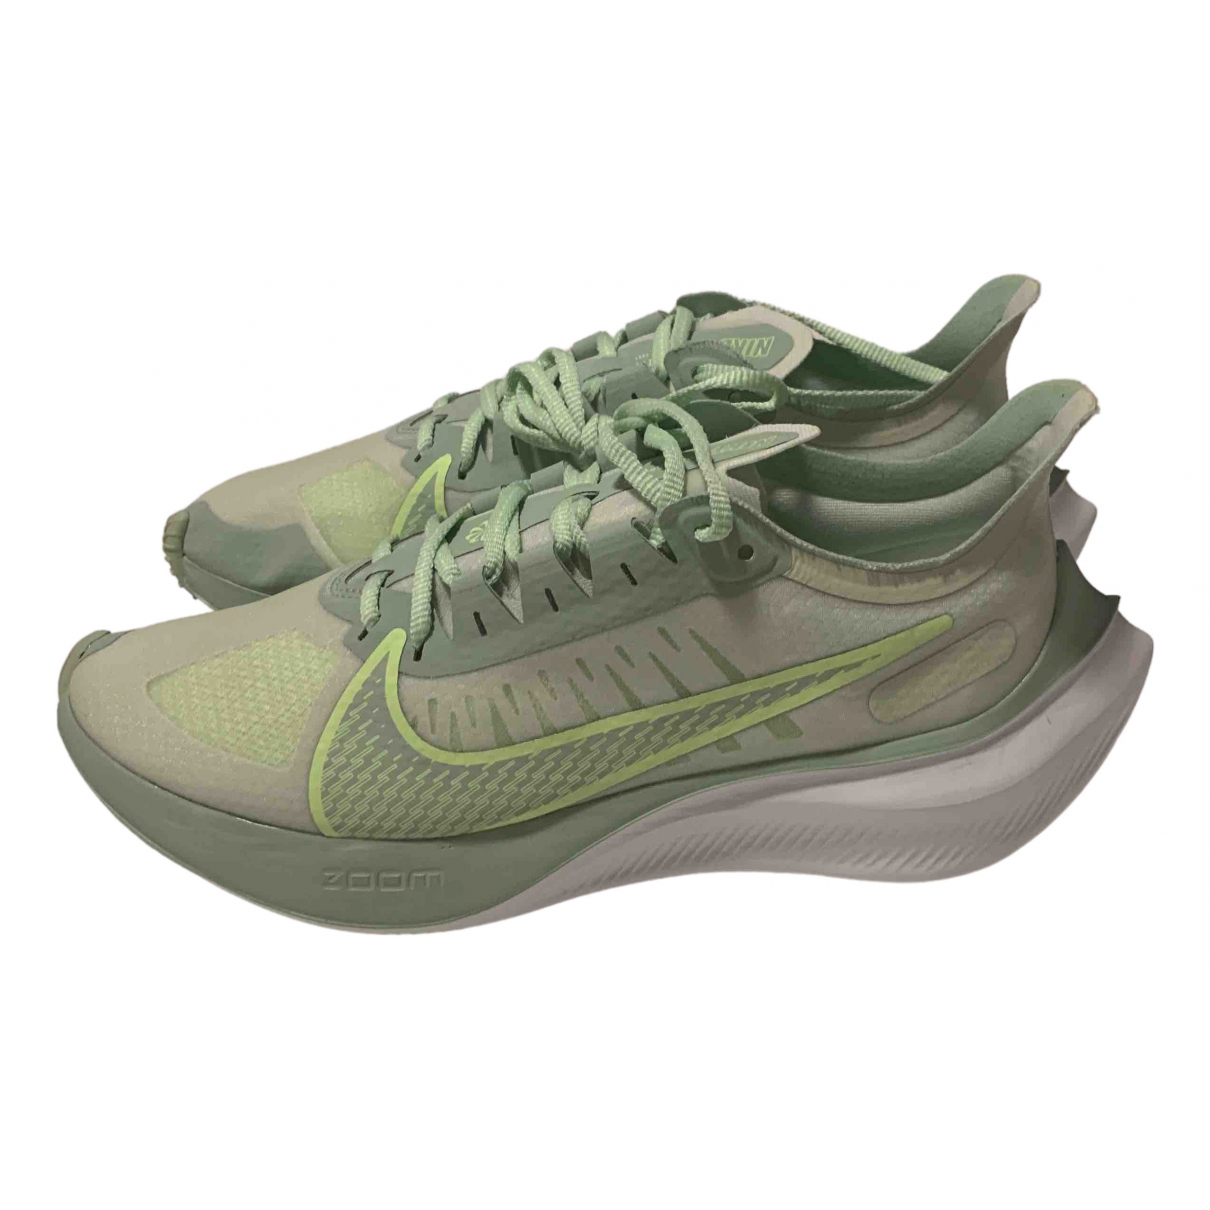 Nike N Green Cloth Trainers for Women 40 EU